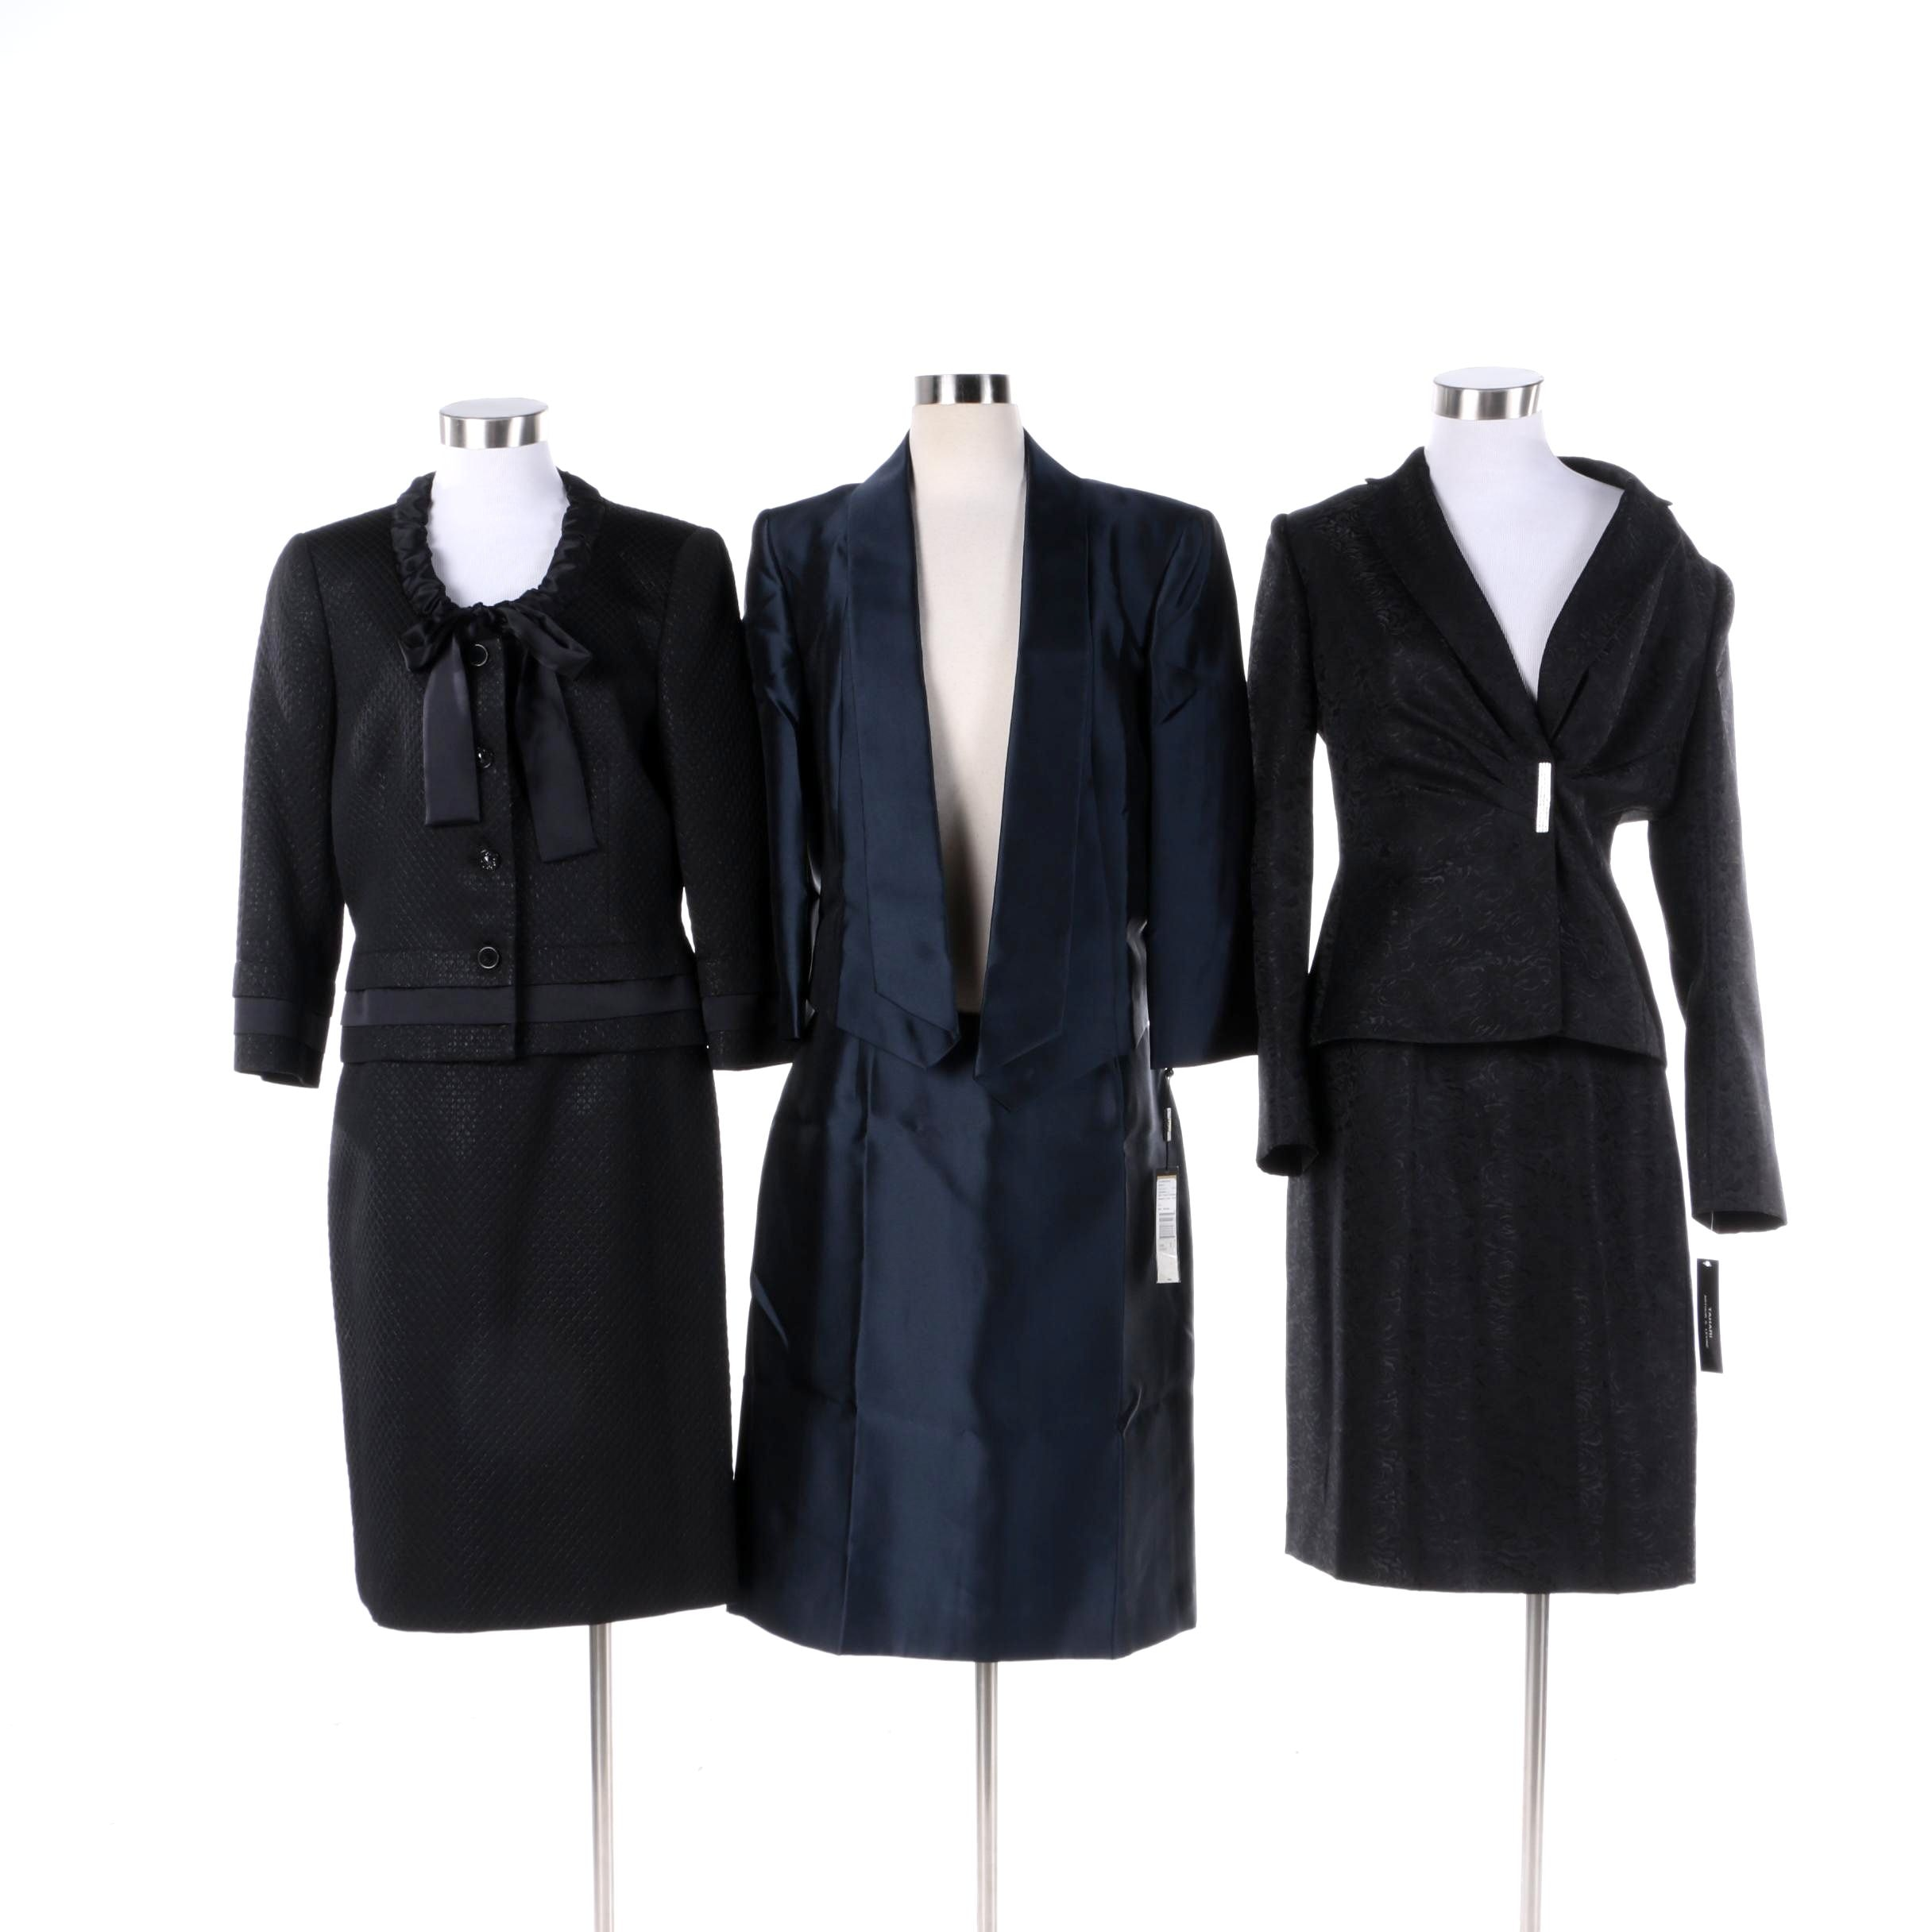 Women's Tahari Arthur S. Levine Skirt Suits